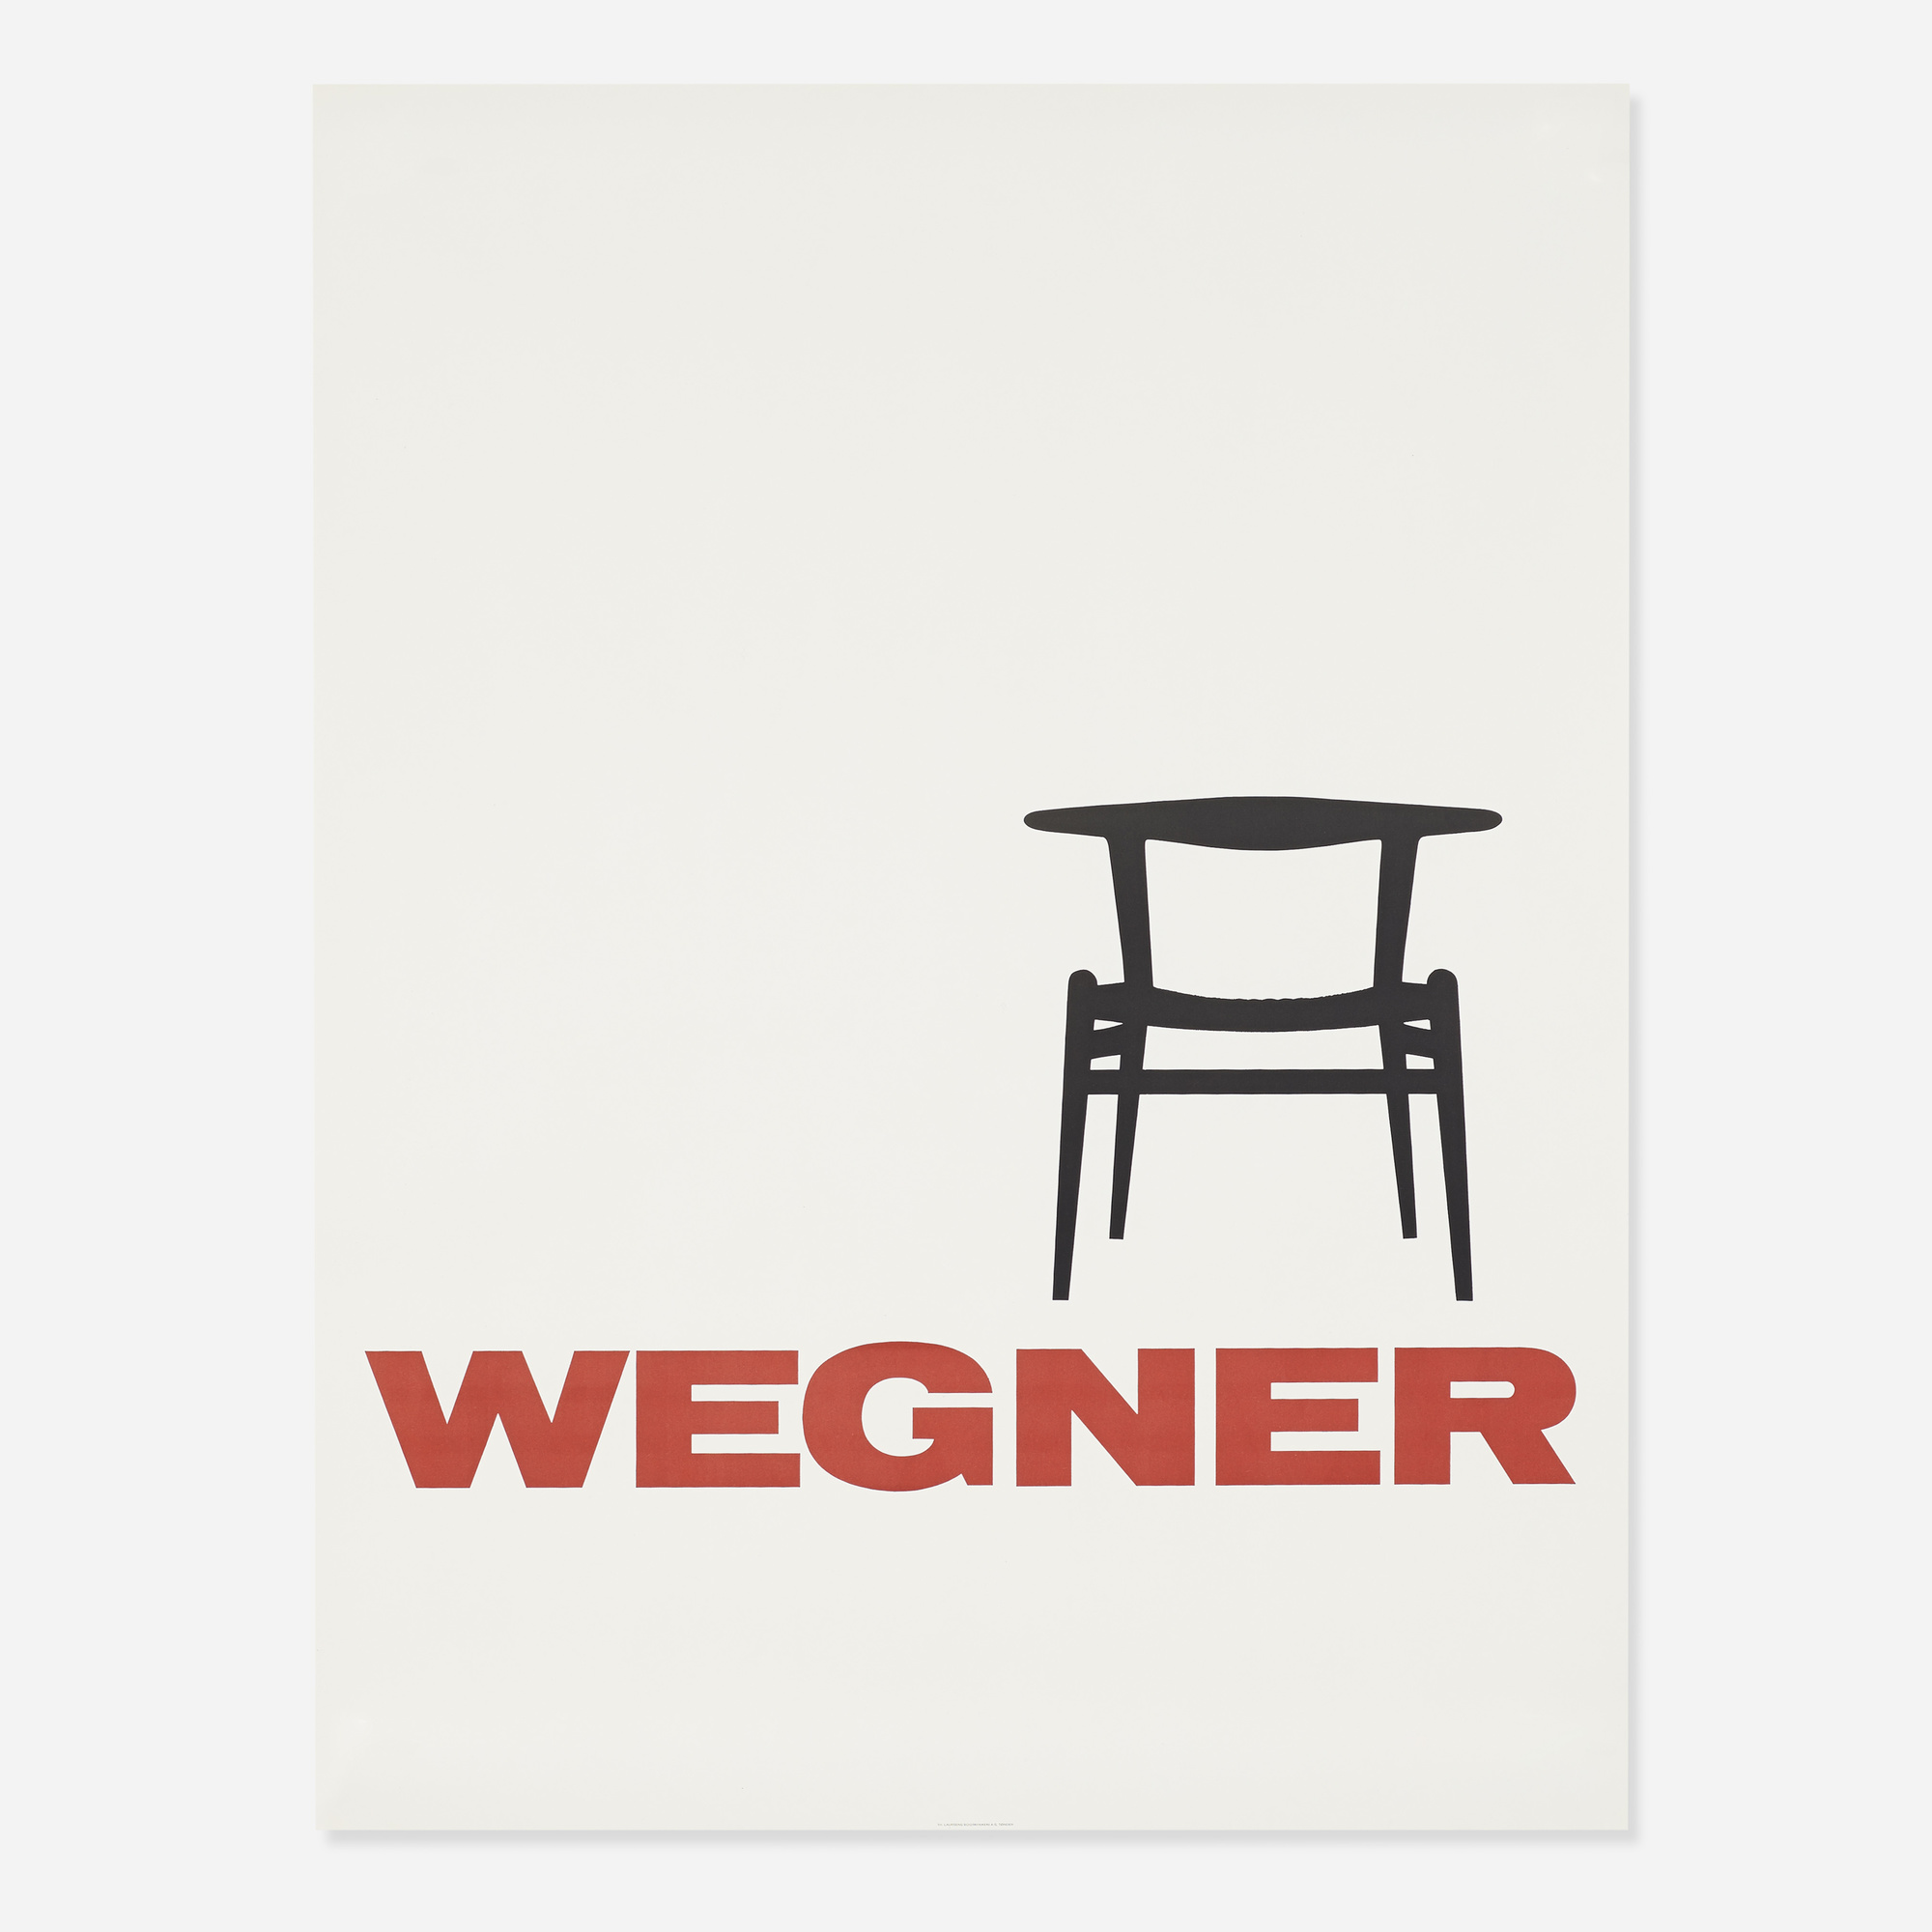 Vitra Chair Poster 368 Hans J Wegner Poster Scandinavian Design 8 May